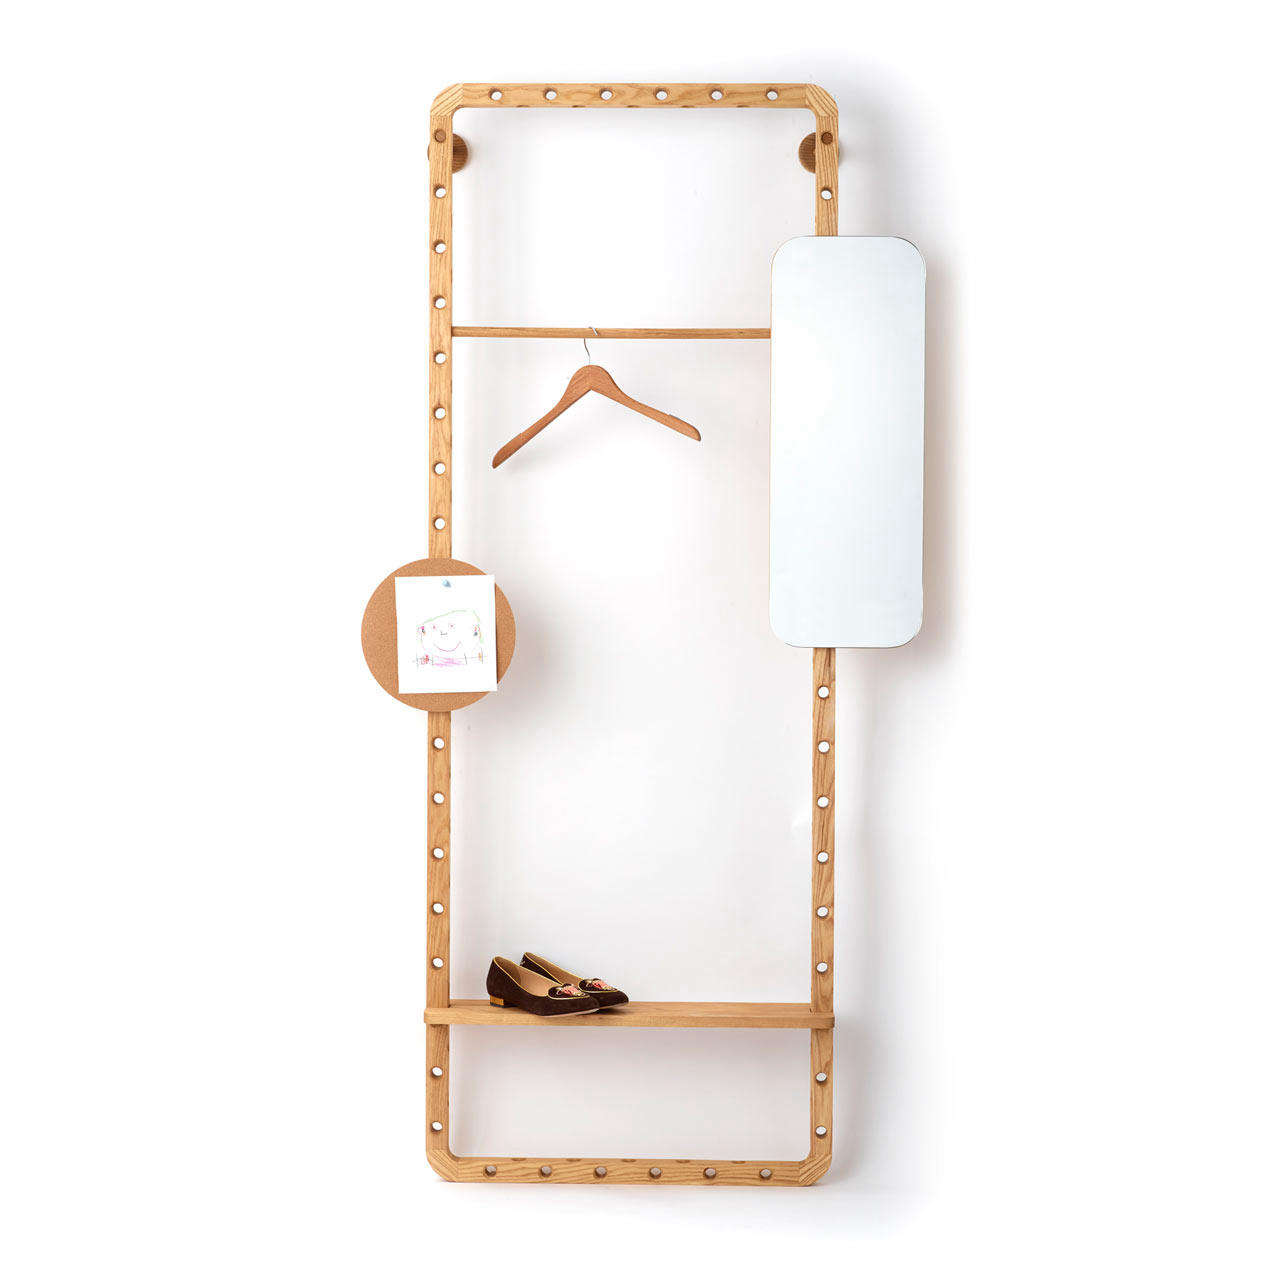 Dotdotdot.Frame modular storage for the closet and beyond.